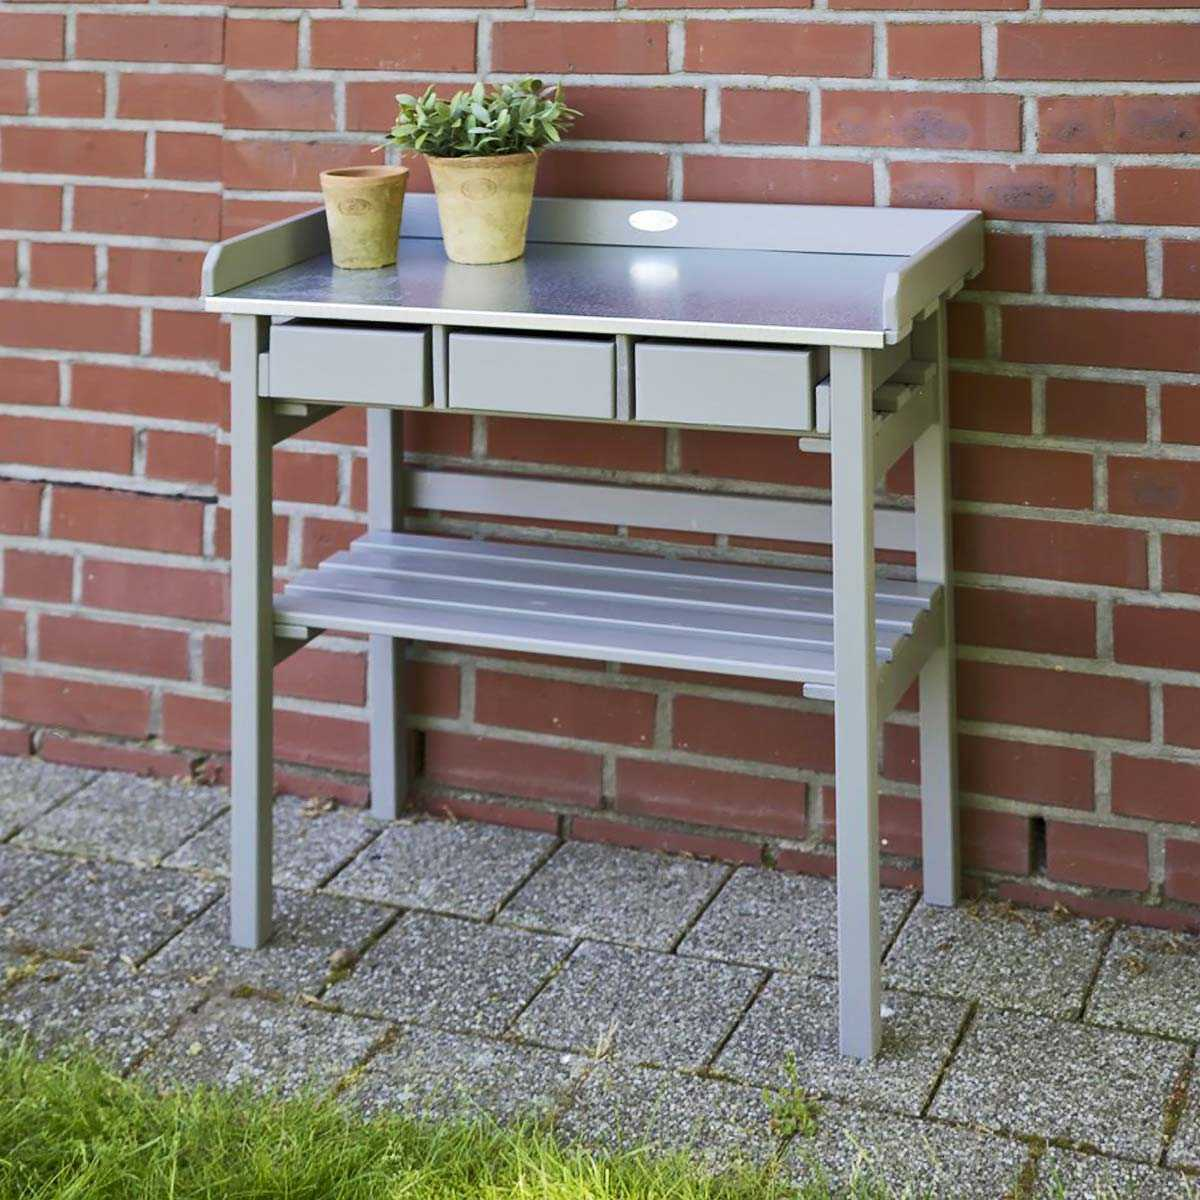 Best mobilier de jardin en zinc pictures awesome for Mobilier de jardin